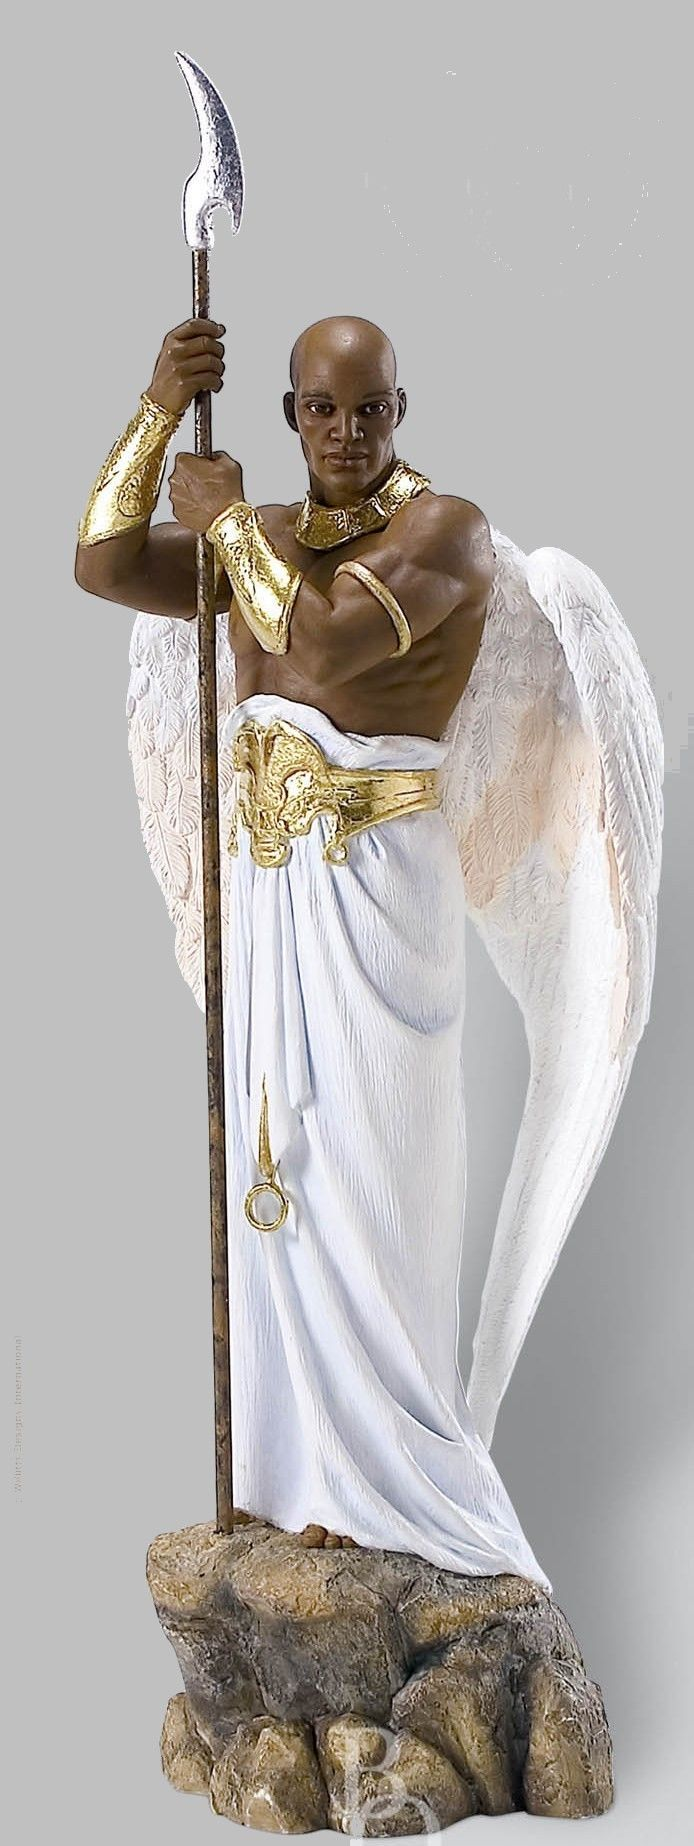 angels images | Guardian Angels are Real Angels not Hallmark Angels « Archdiocese of ...